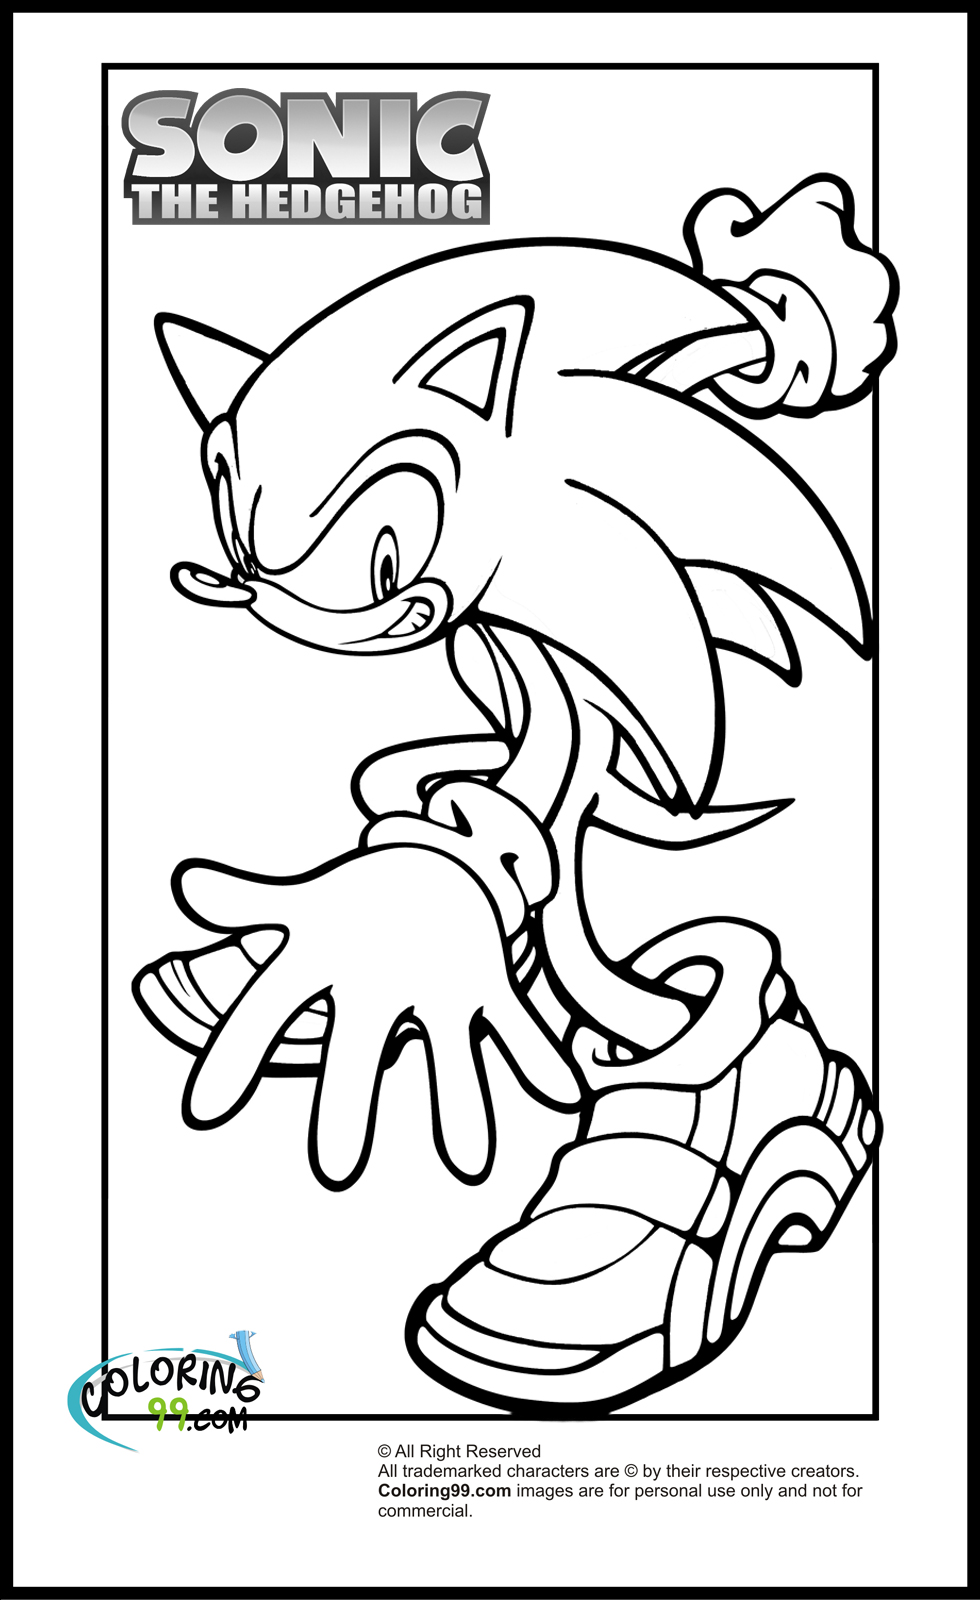 coloring pages sonic sonic the hedgehog coloring book coloring sonic pages